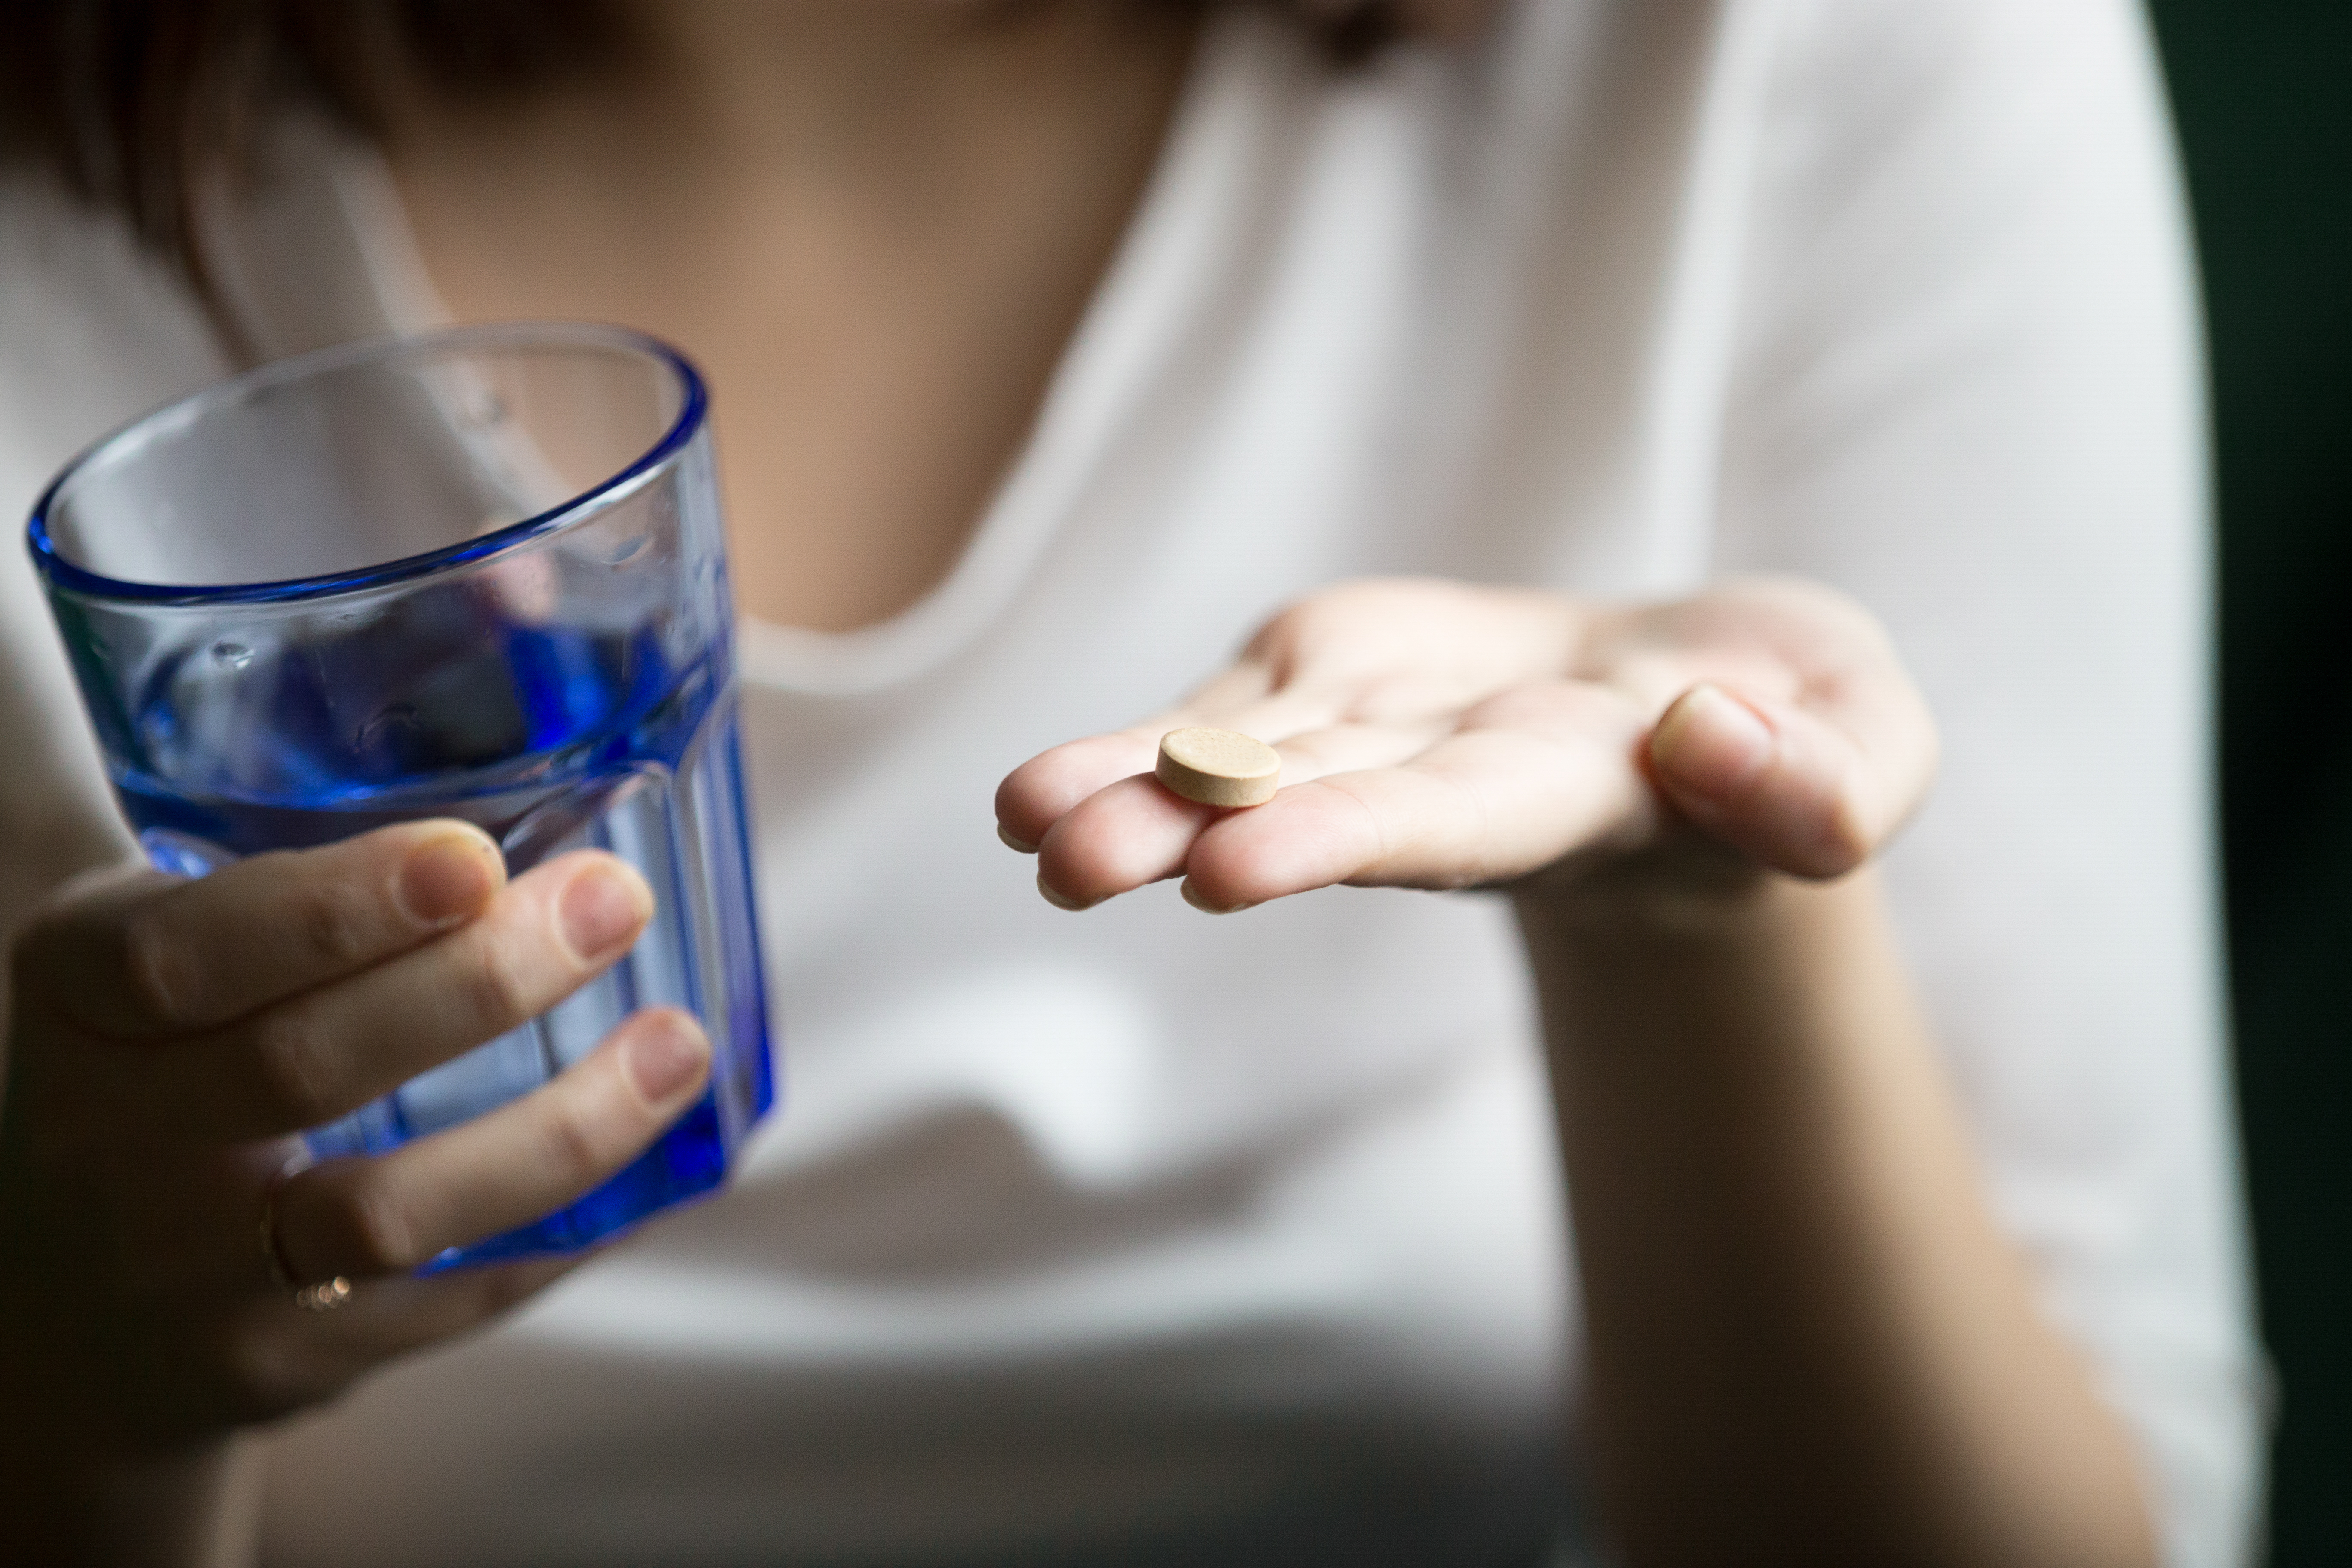 Female hands holding pill and glass of water, woman taking supplements or antibiotic antidepressant painkiller medication to relieve pain headache, contraception side effects concept, close up view